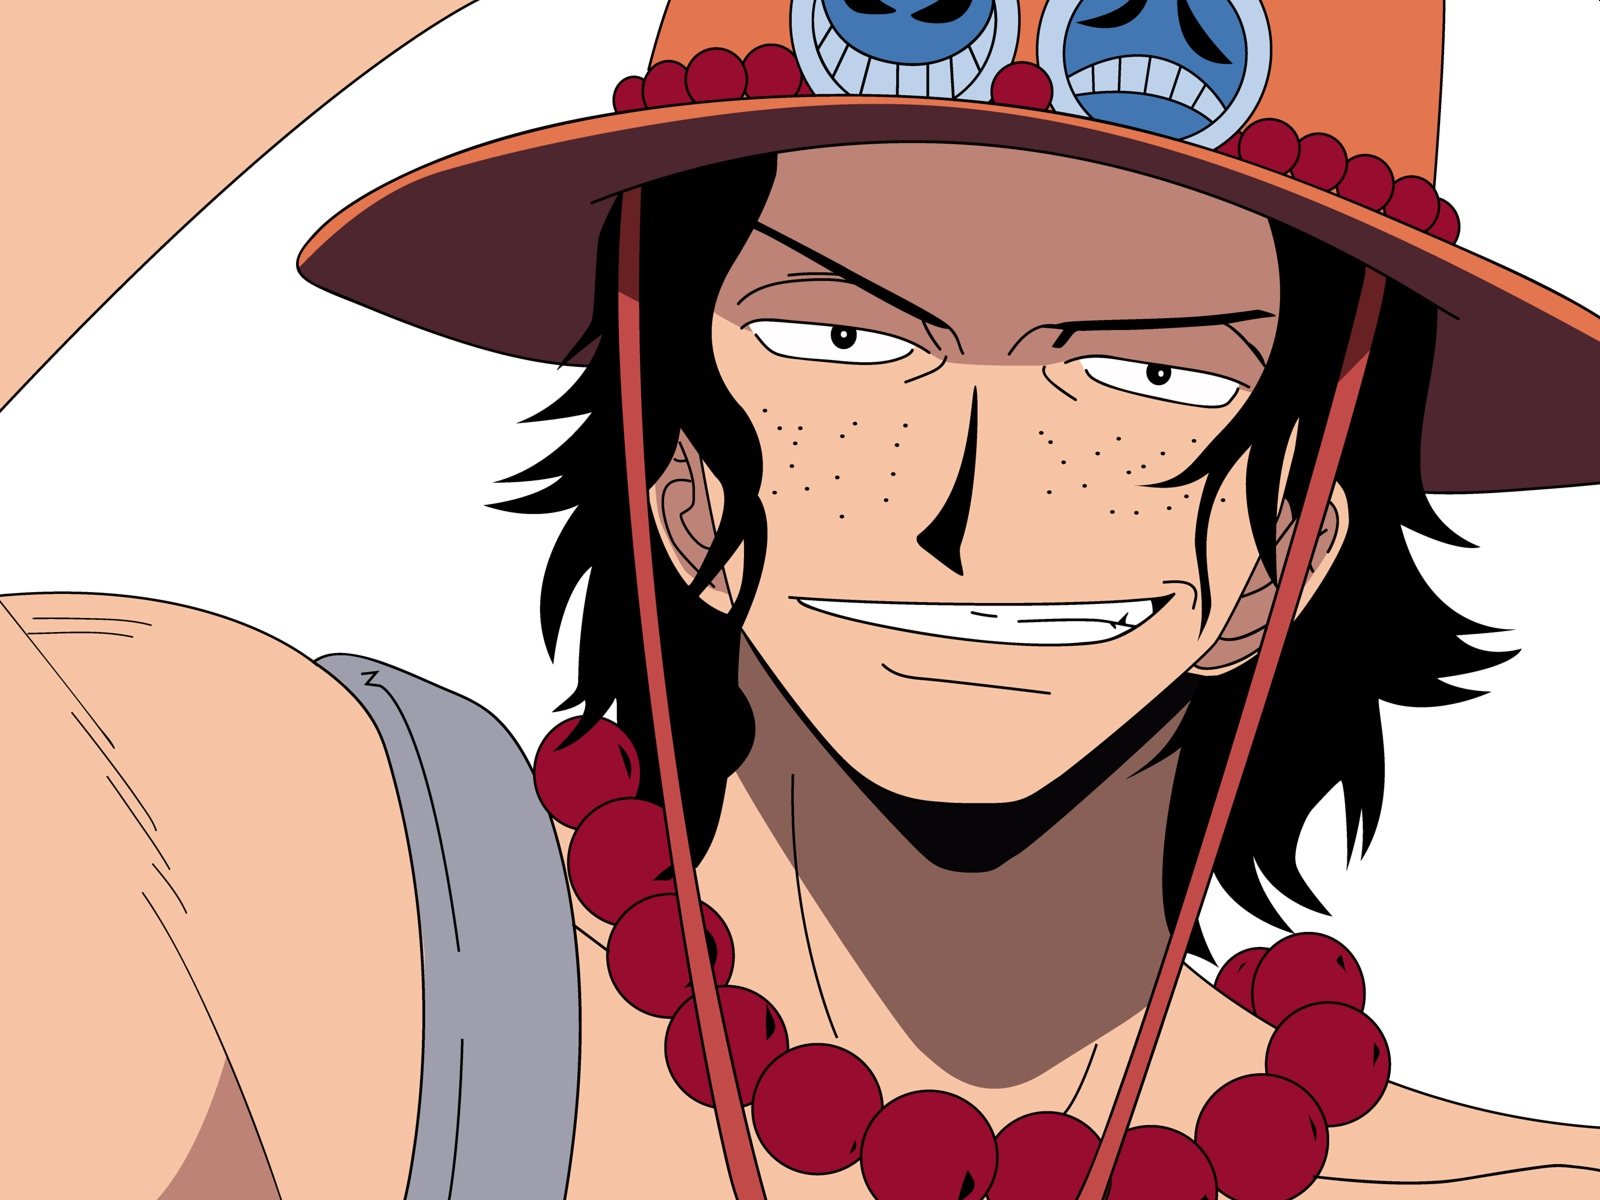 Tags: Anime, ONE PIECE, Portgas D. Ace, Freckles, Whitebeard Pirates